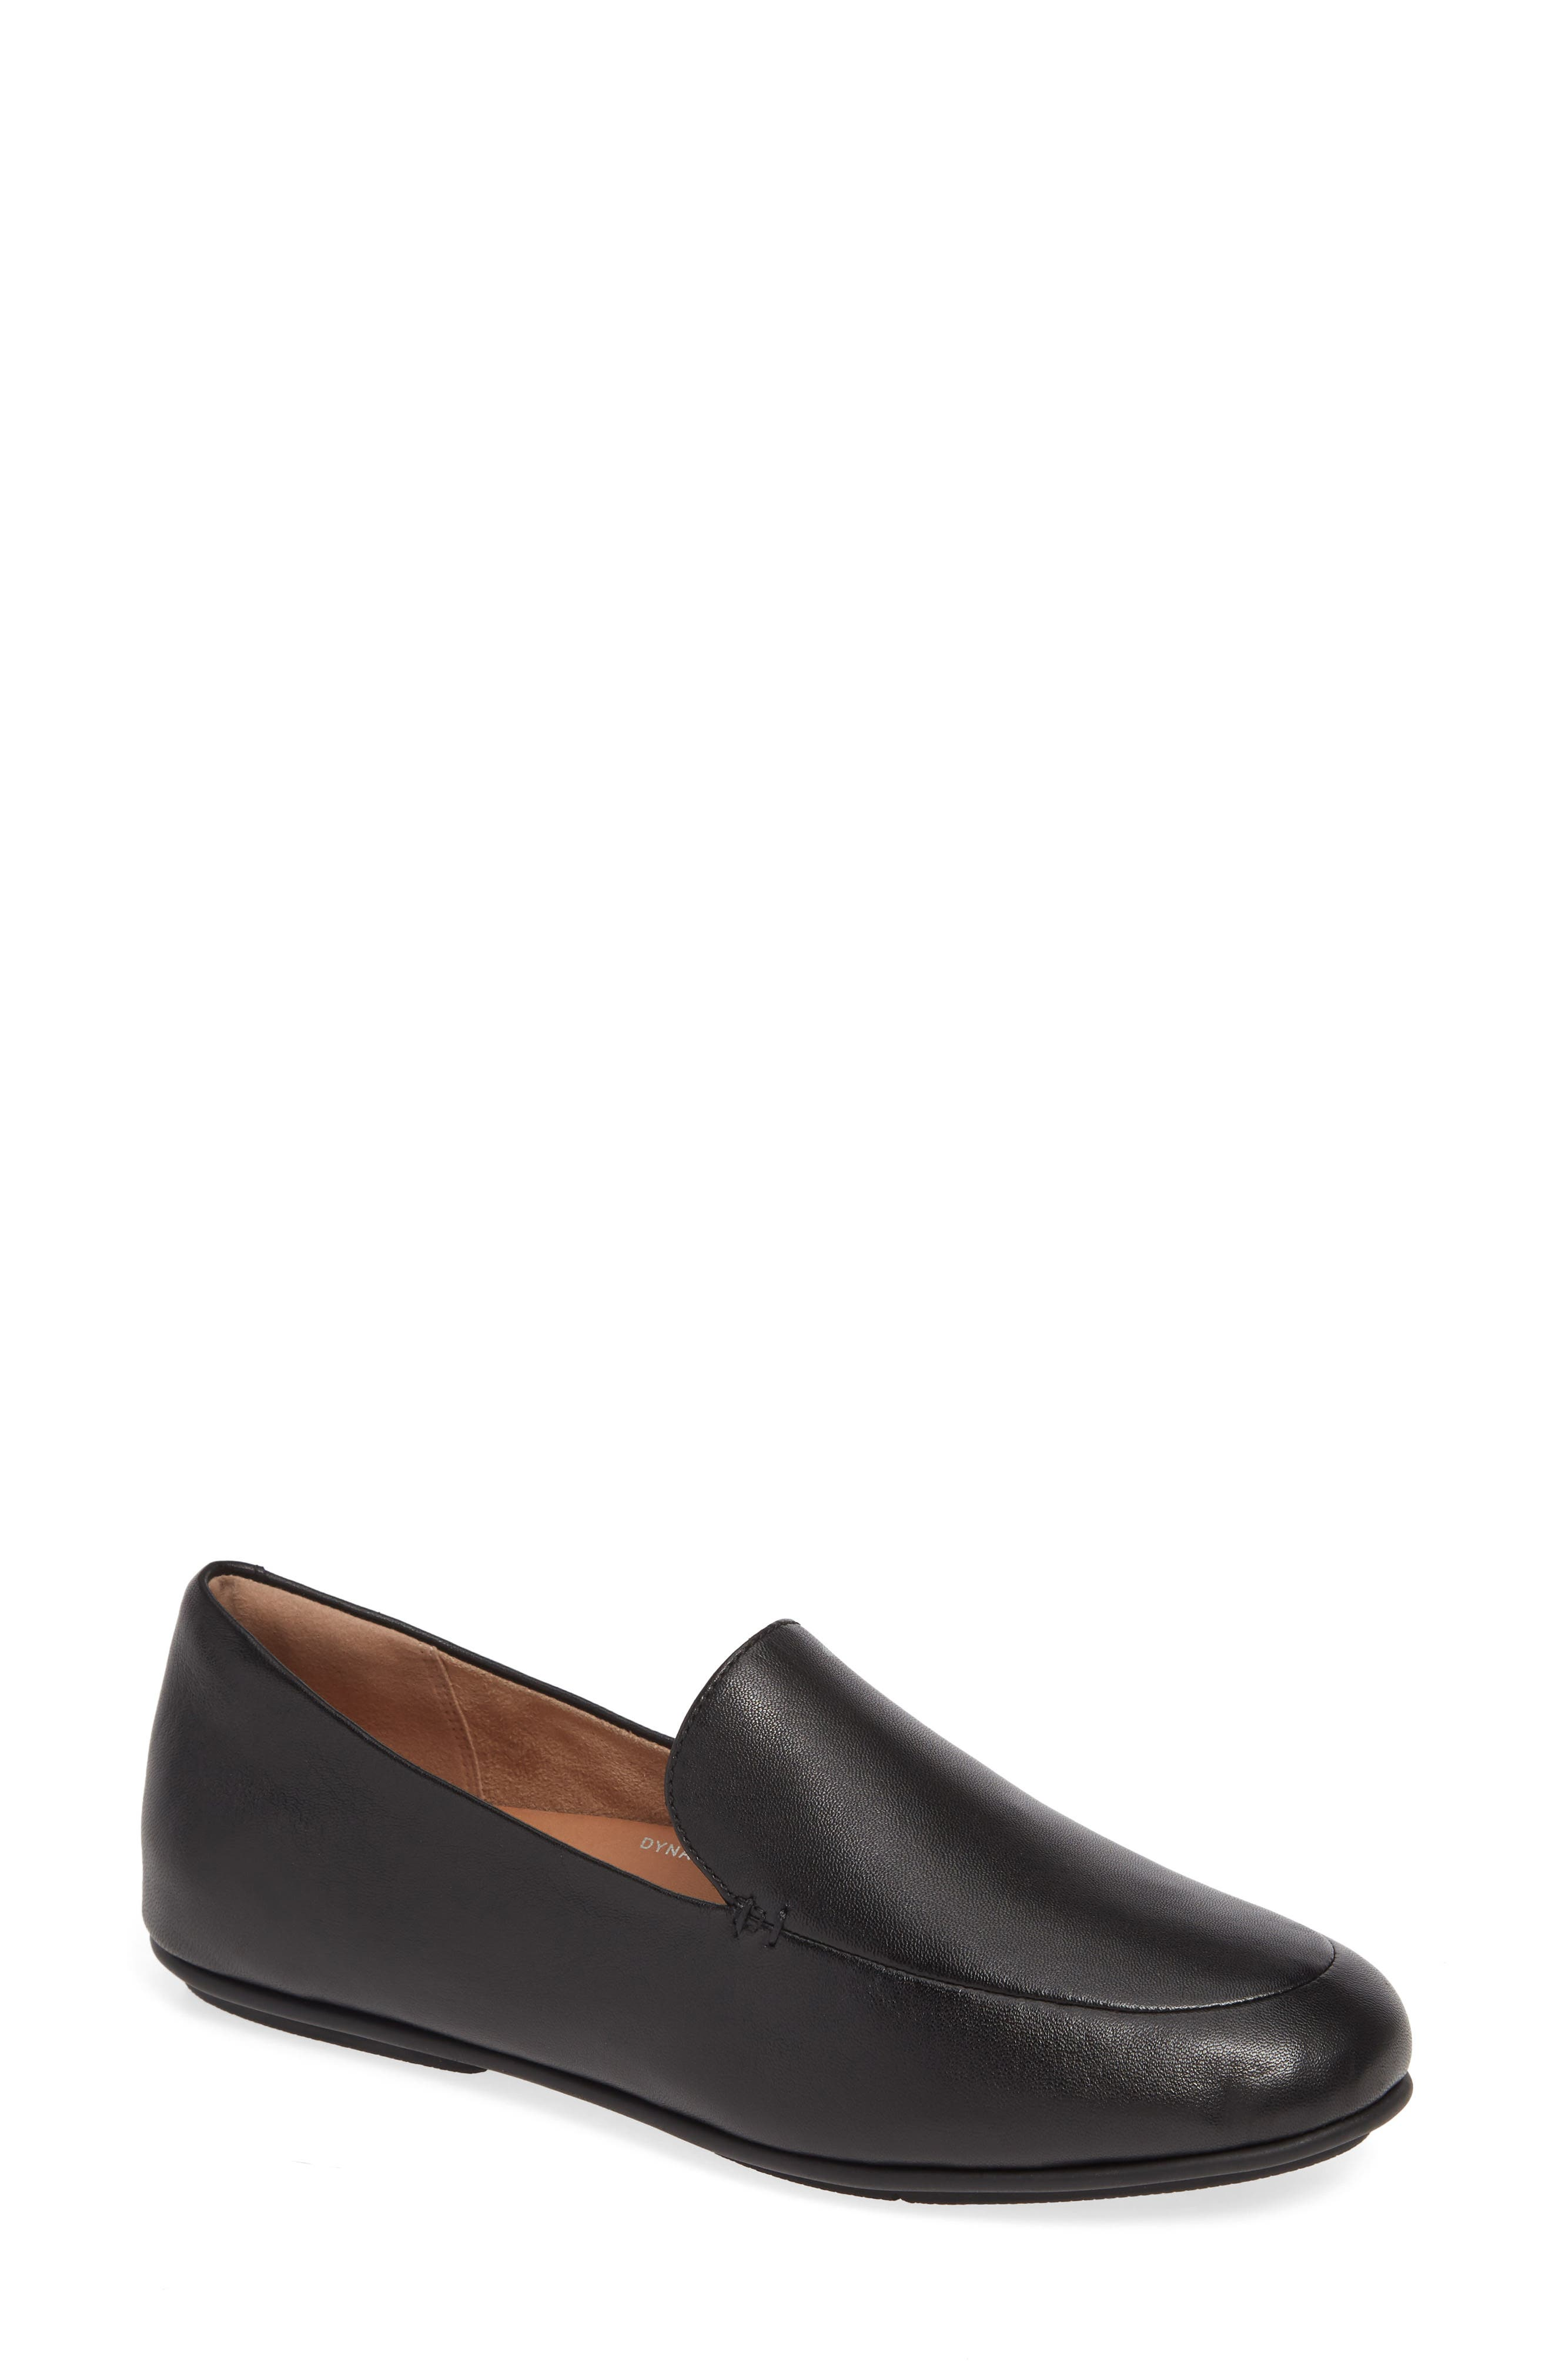 Image of FitFlop Lena Loafer